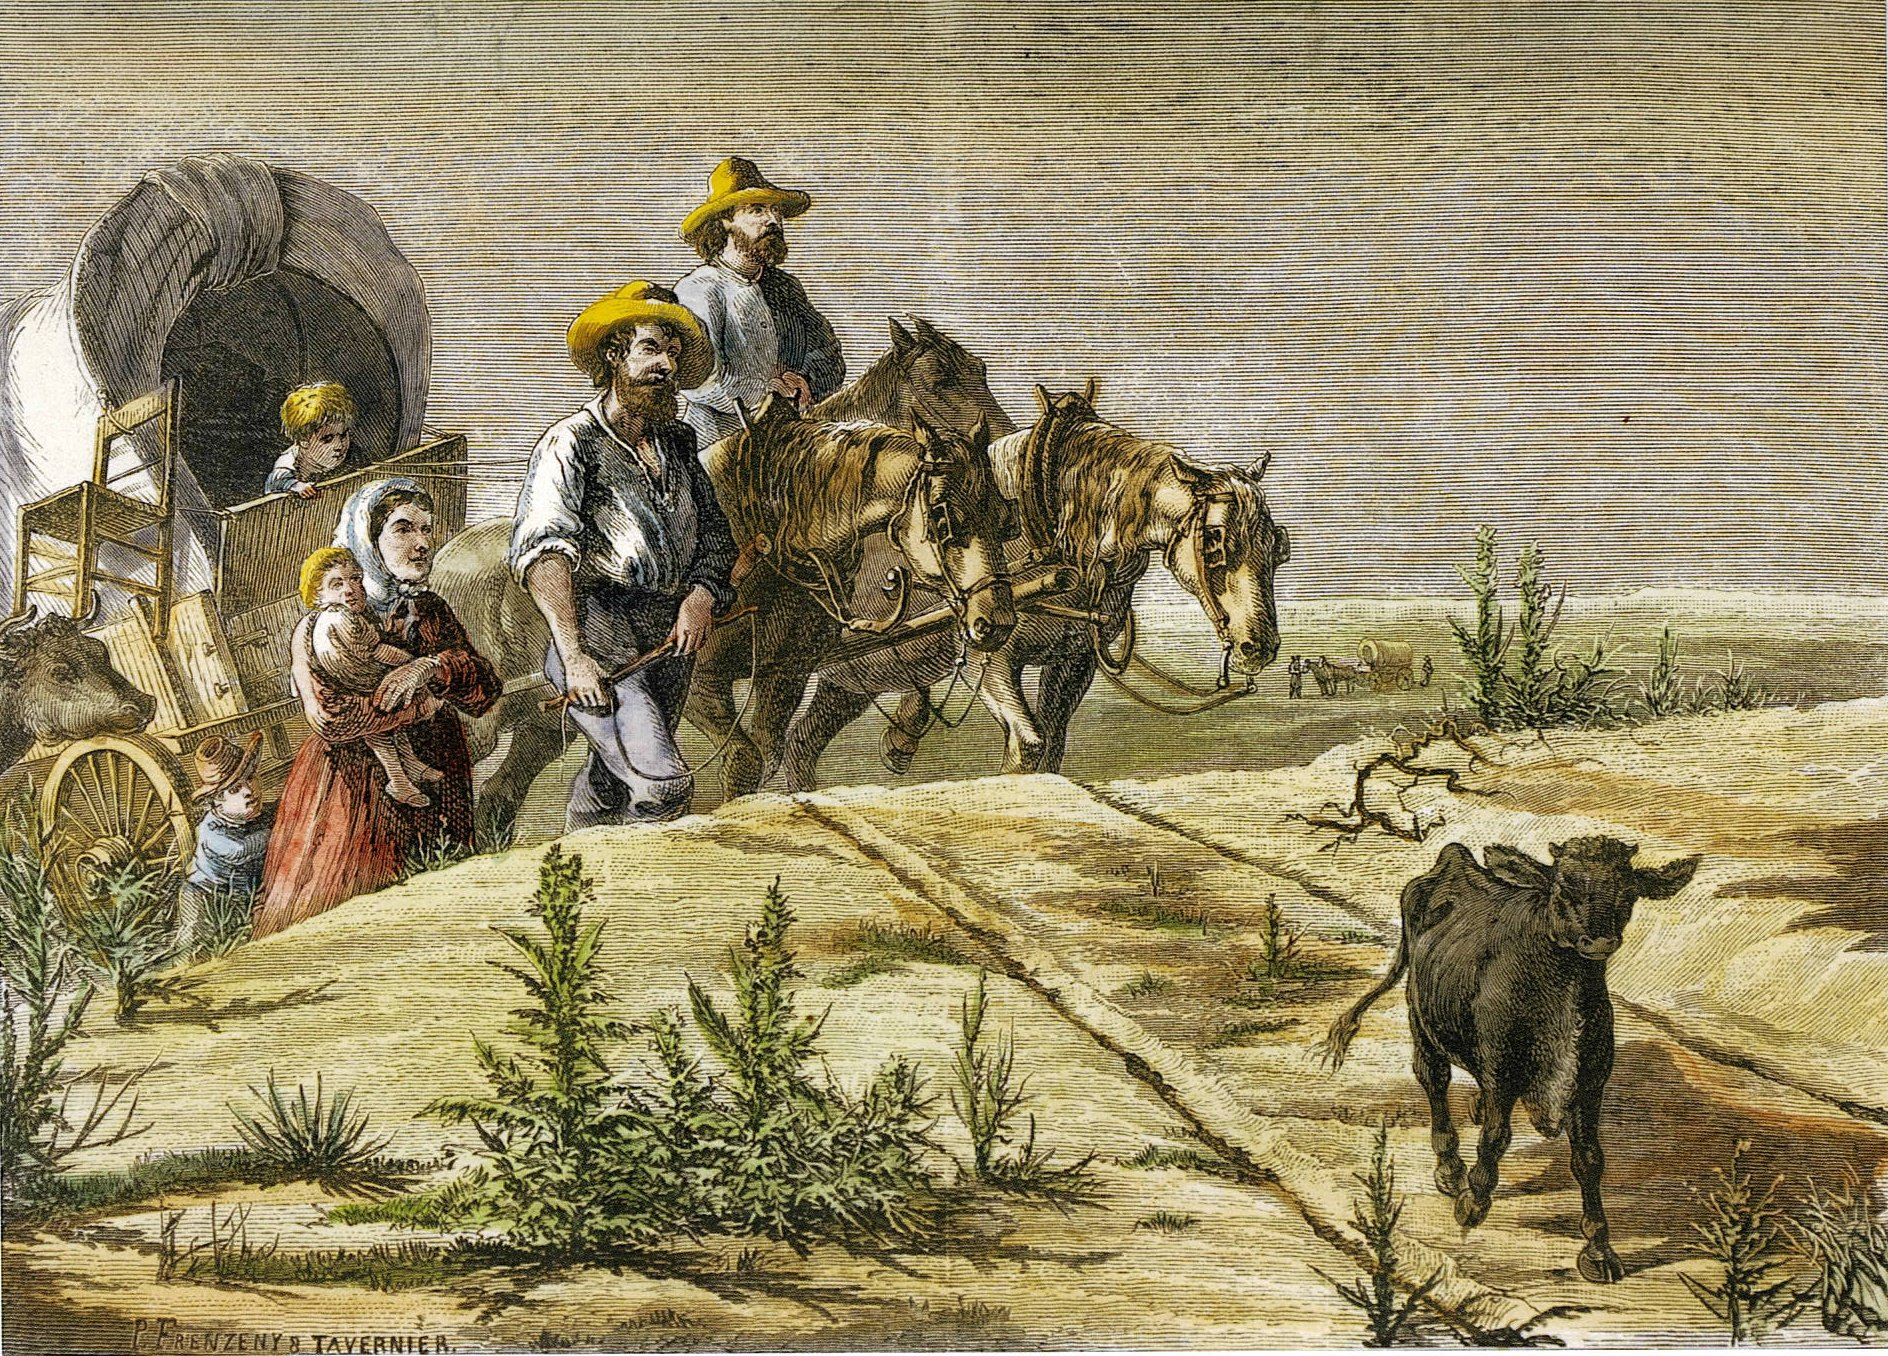 Sketches from the Far West‒Arkansas Pilgrims by Frenzeny and Tavernier